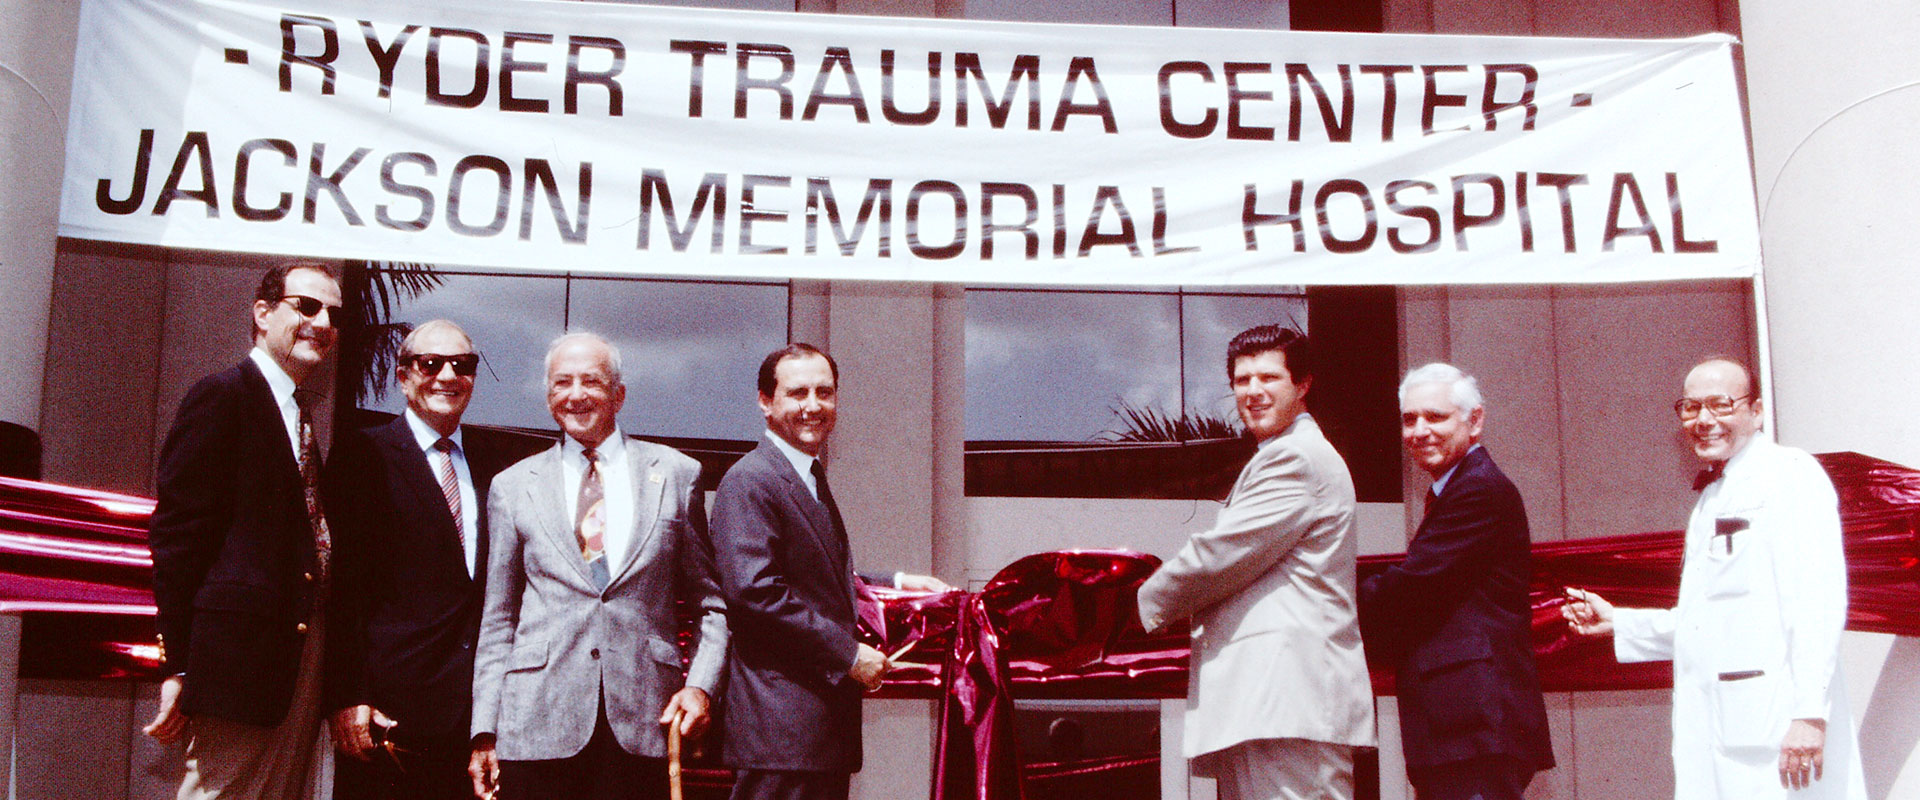 Ryder Trauma Center Ribbon cutting grand opening in 1992